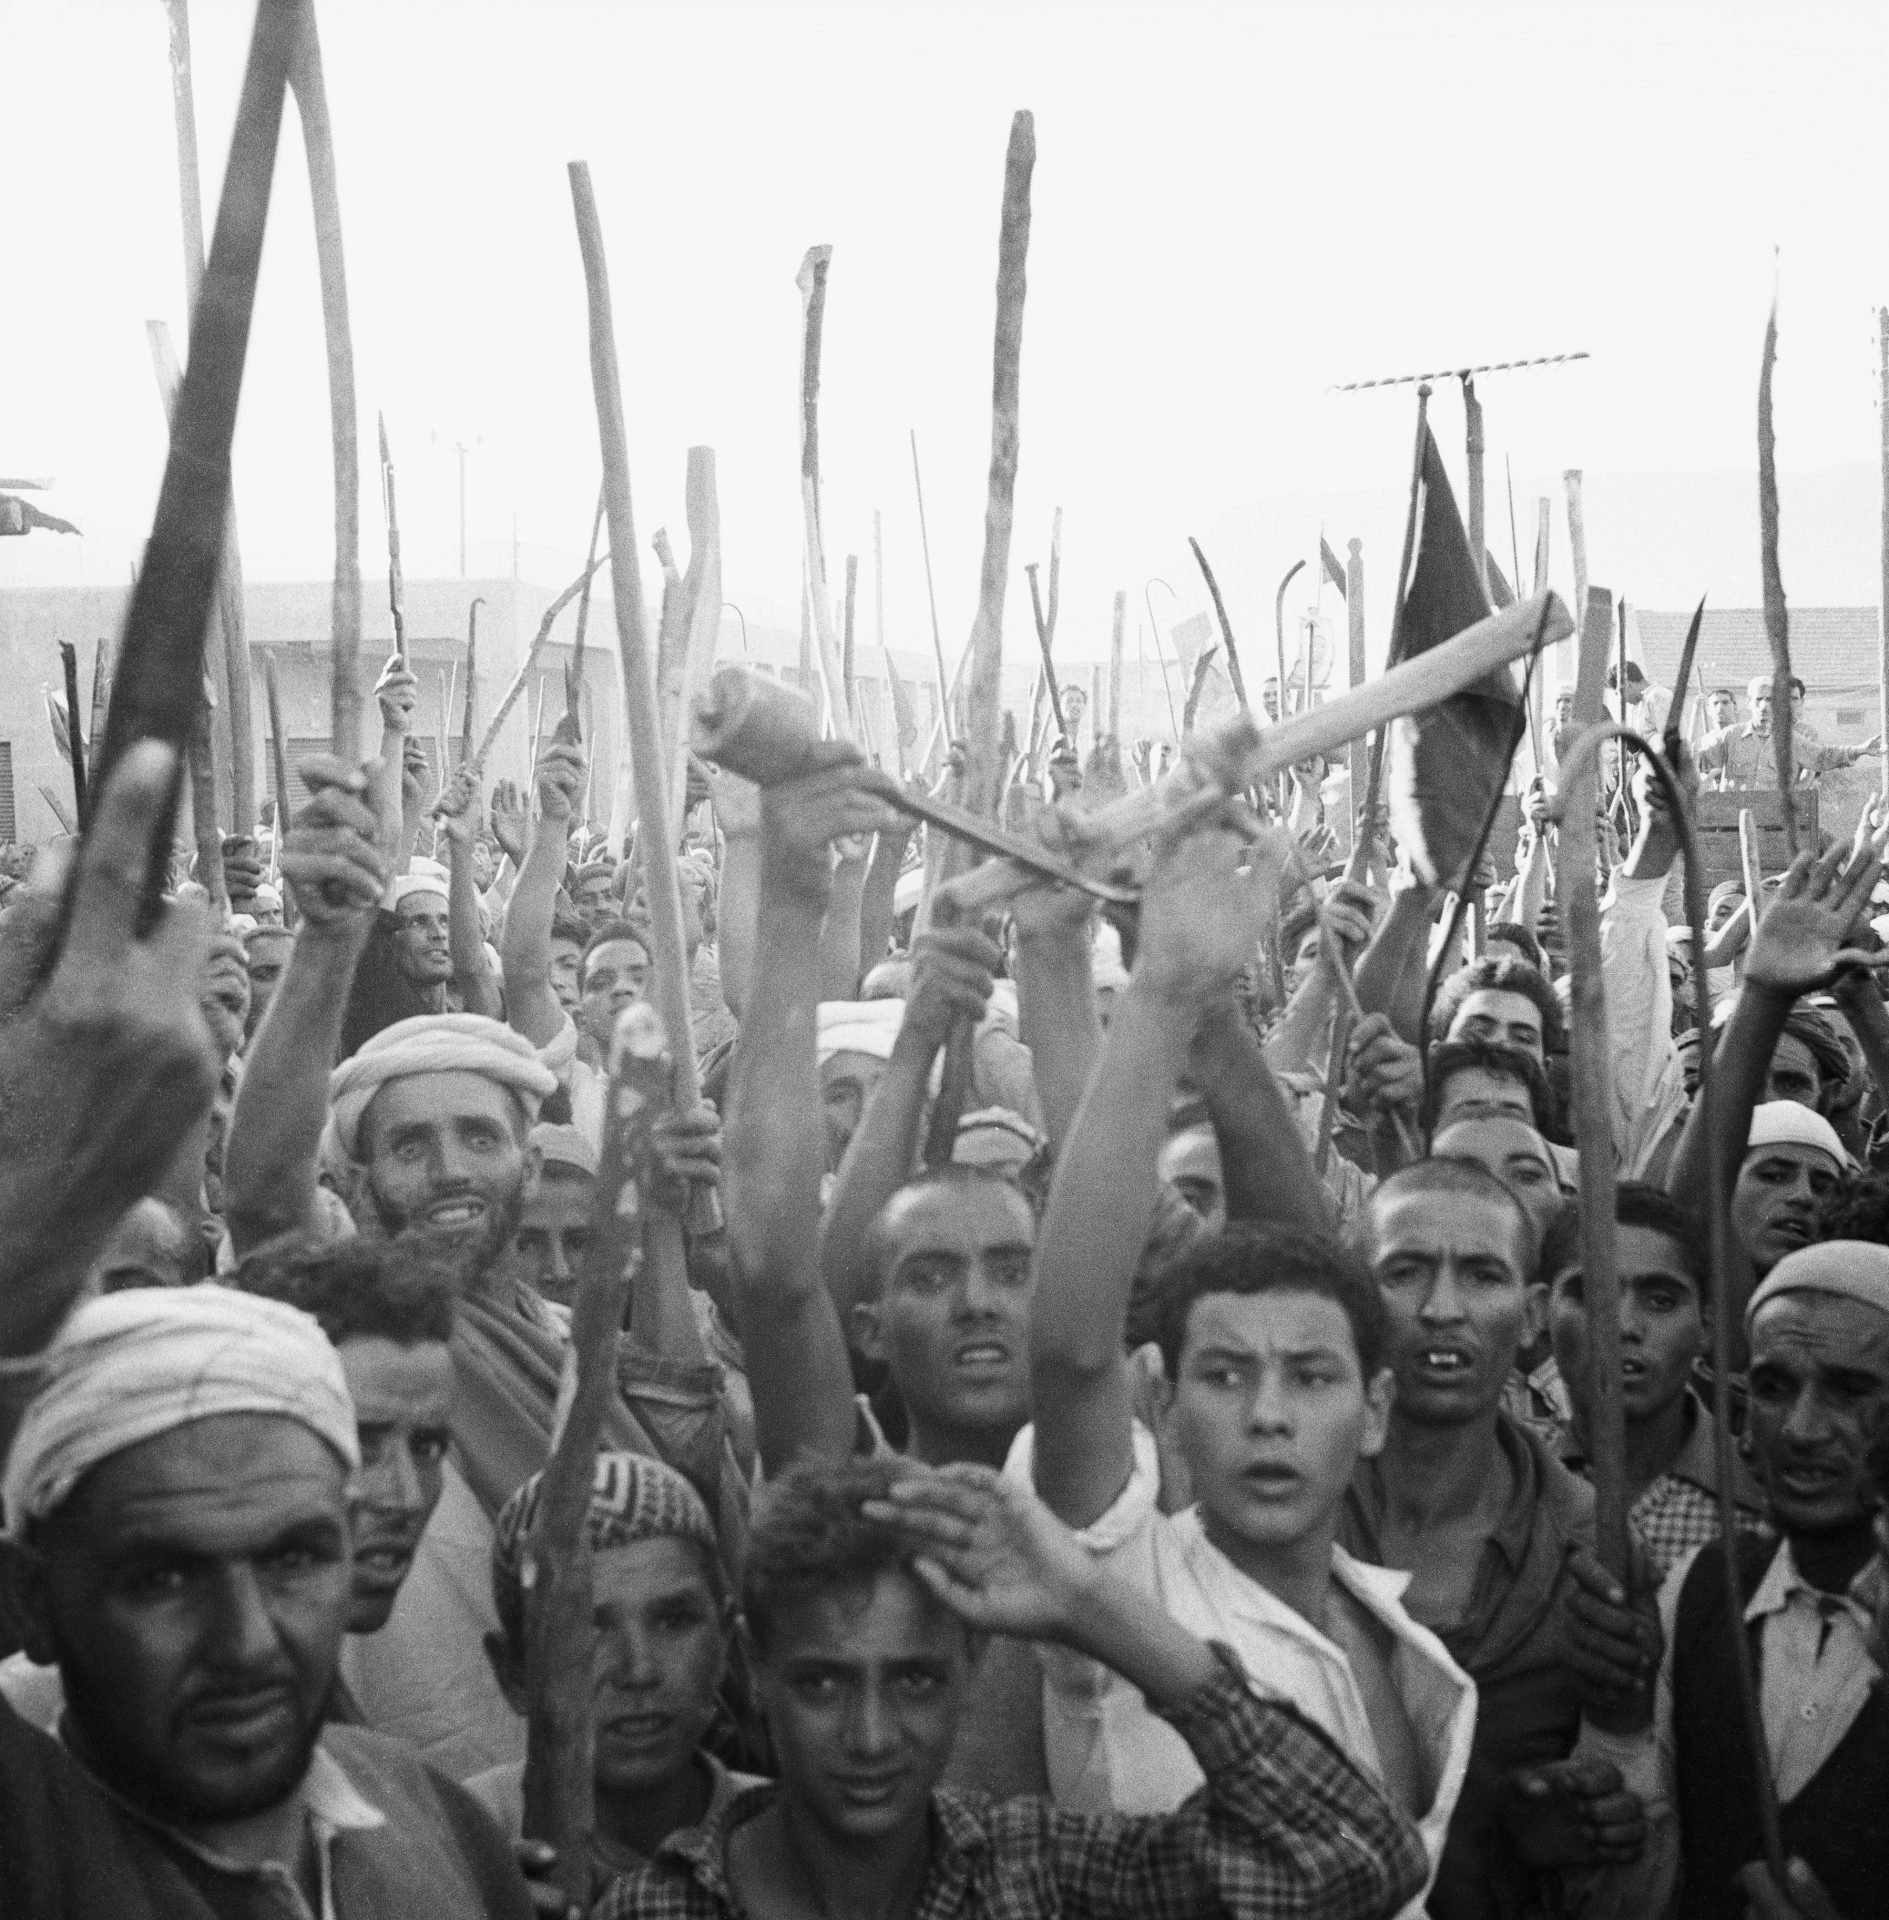 Protesters in Khenifra, French Morocco, wave weapons during an uprising against the French government in 1955. The struggle for independence forms the backdrop of Paul Bowles' novel The Spider House. Photo: Bettmann Archive/Getty.